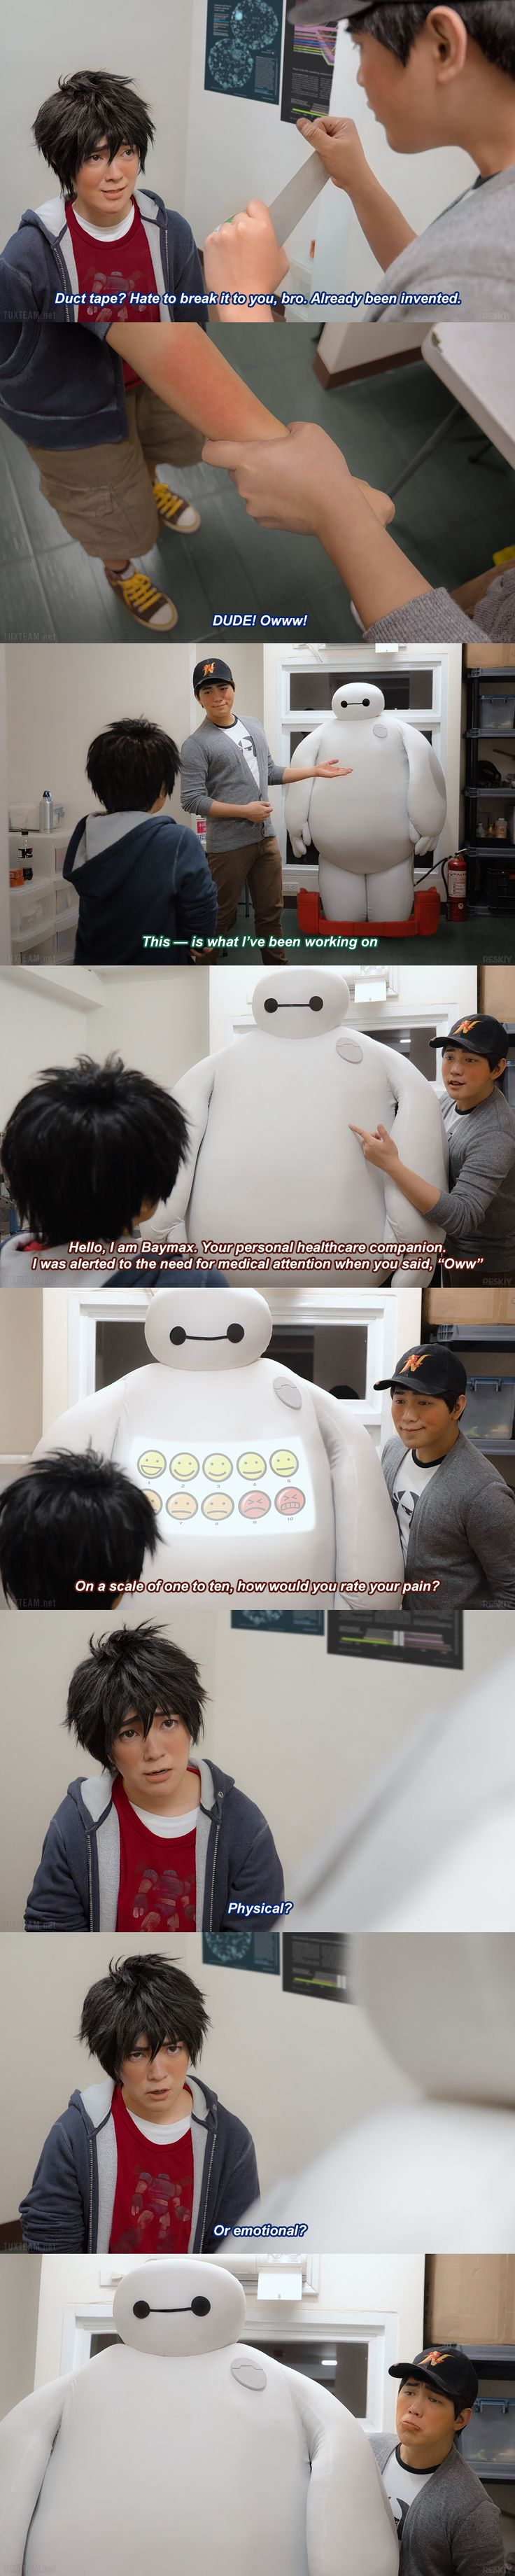 "Big Hero 6: How would you rate your pain? by behindinfinity.deviantart.com on @DeviantArt - Hiro, Tadashi, and Baymax from ""Big Hero 6""; uploaded by the first. This is Part 1 of 2; also, just to be clear, Baymax is also played by a cosplayer here."